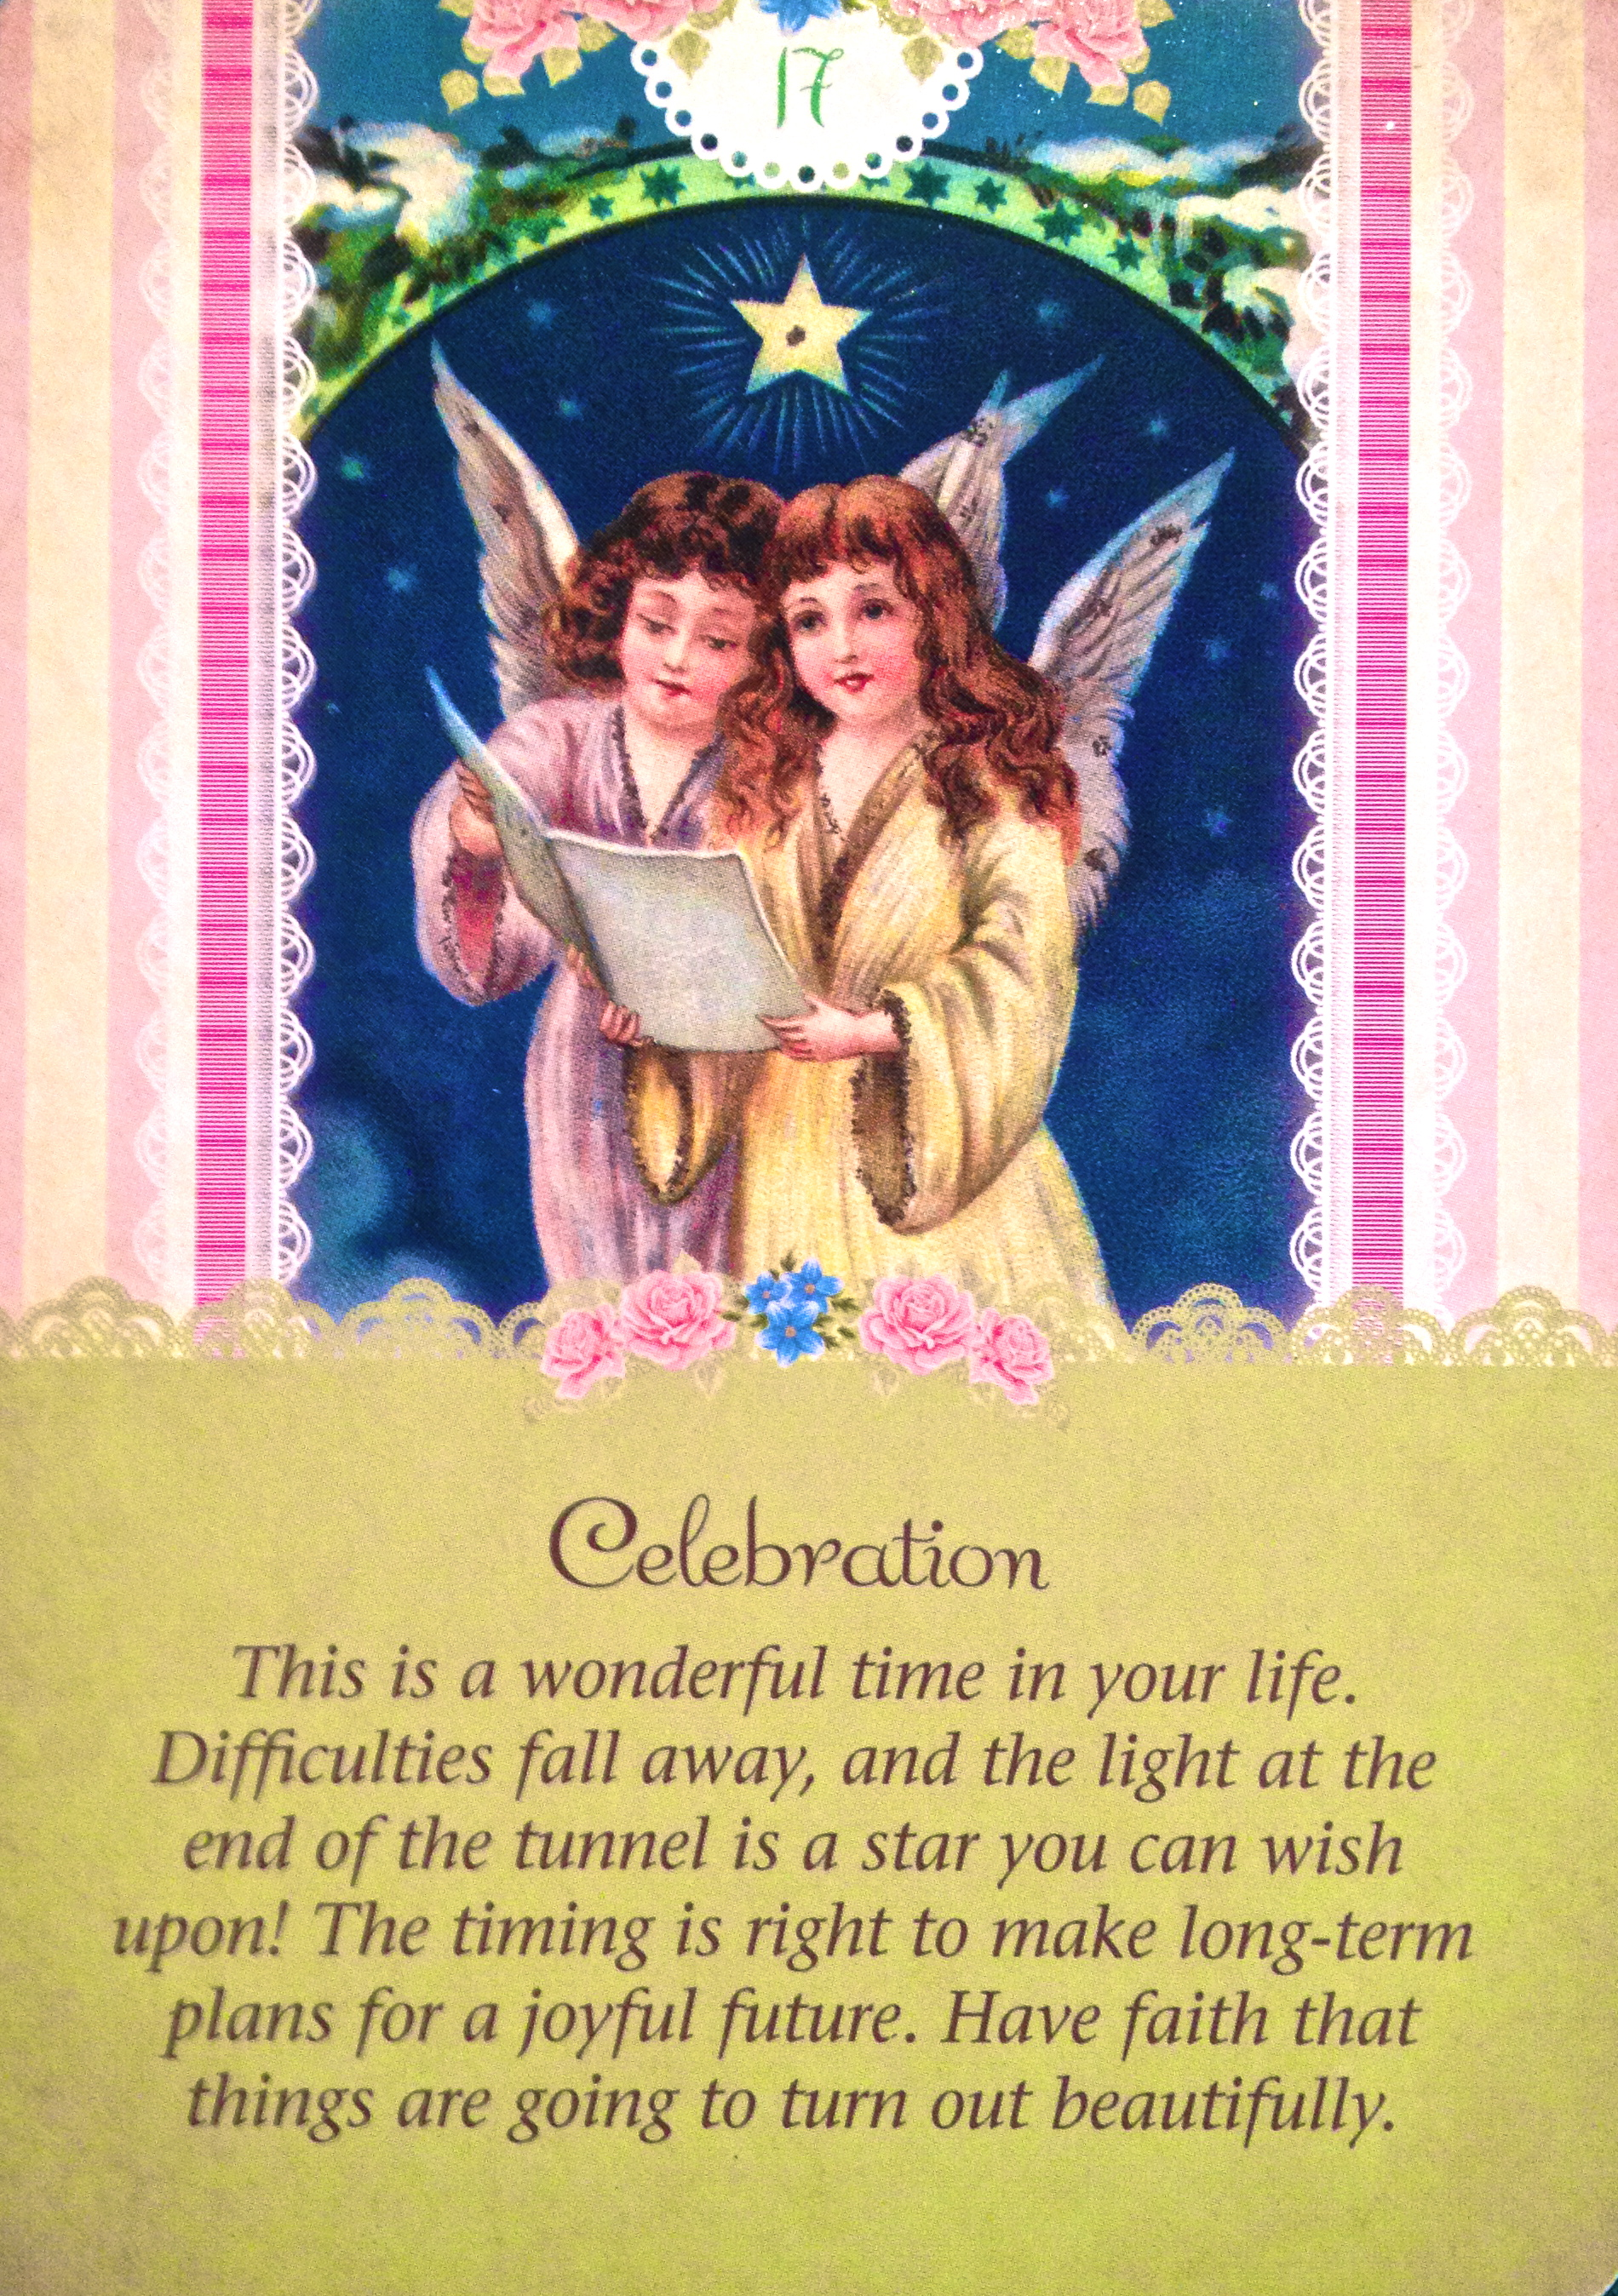 Celebration, From The Guardian Angel Oracle Card Deck, By Doreen Virtue Ph.D